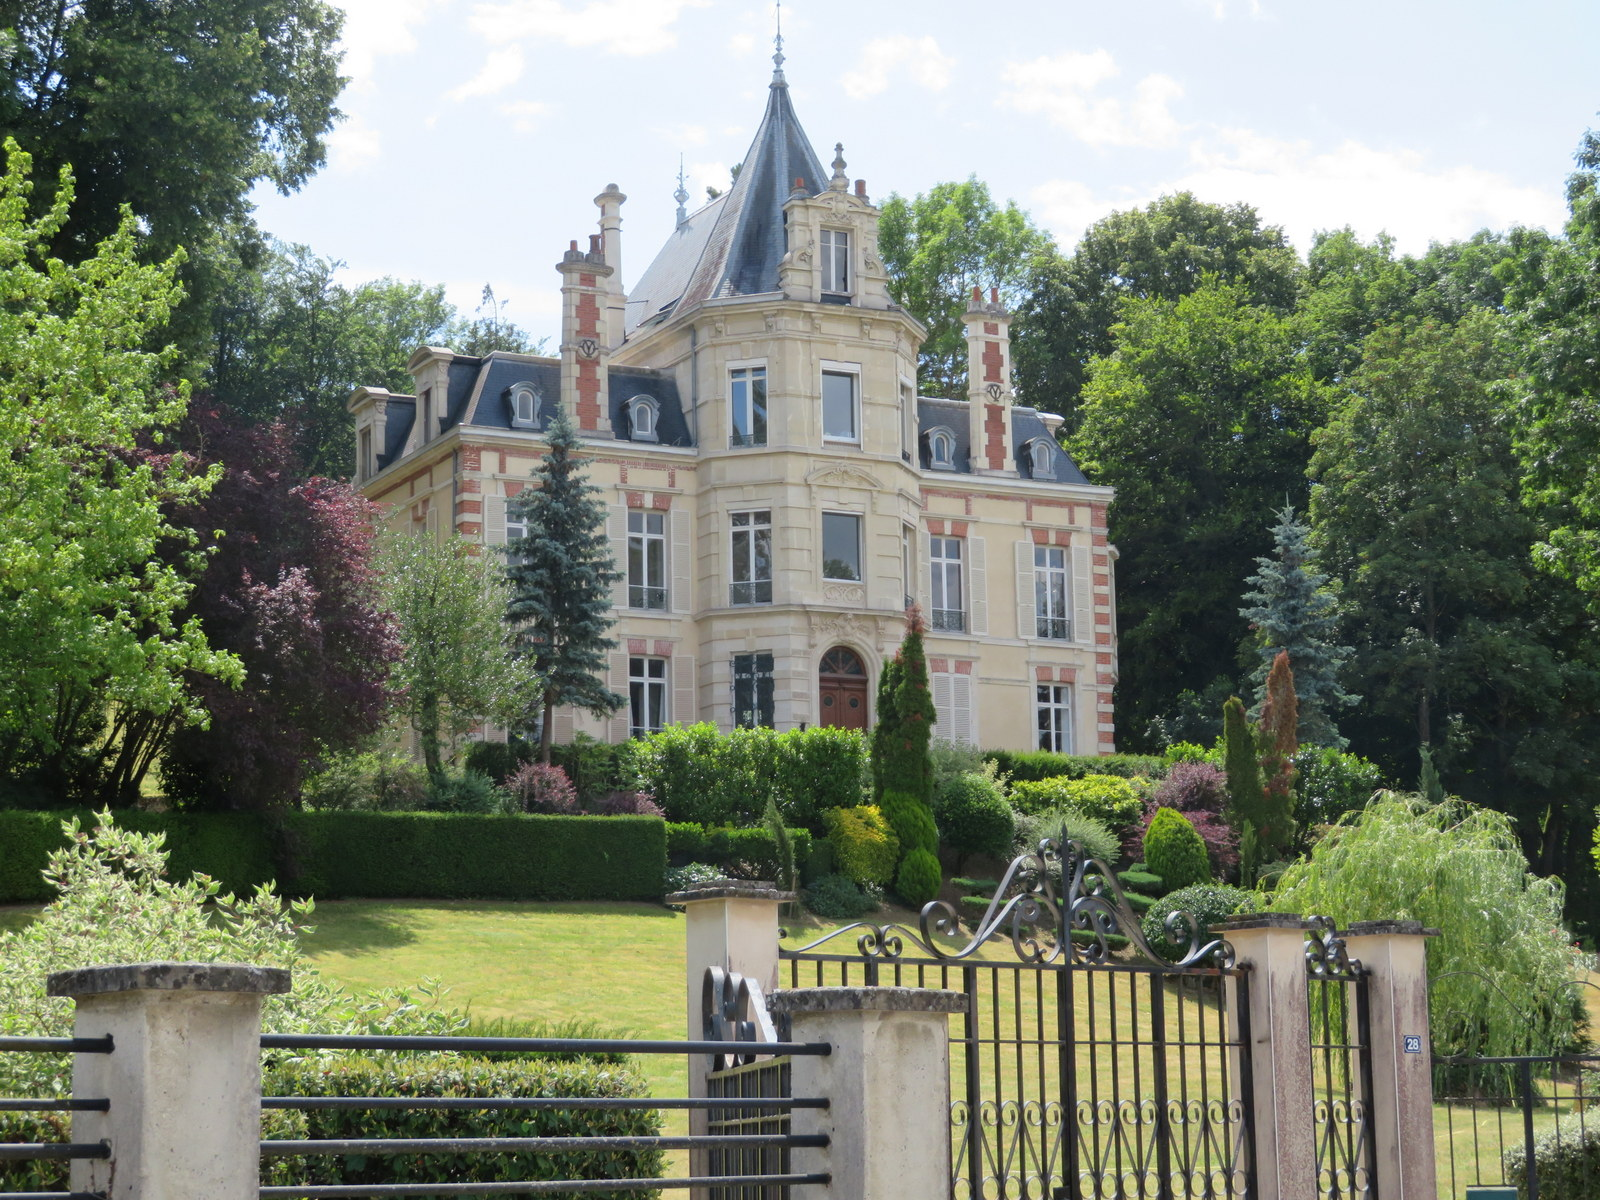 One of many 'champagne mansions' in Rilly la Montagne